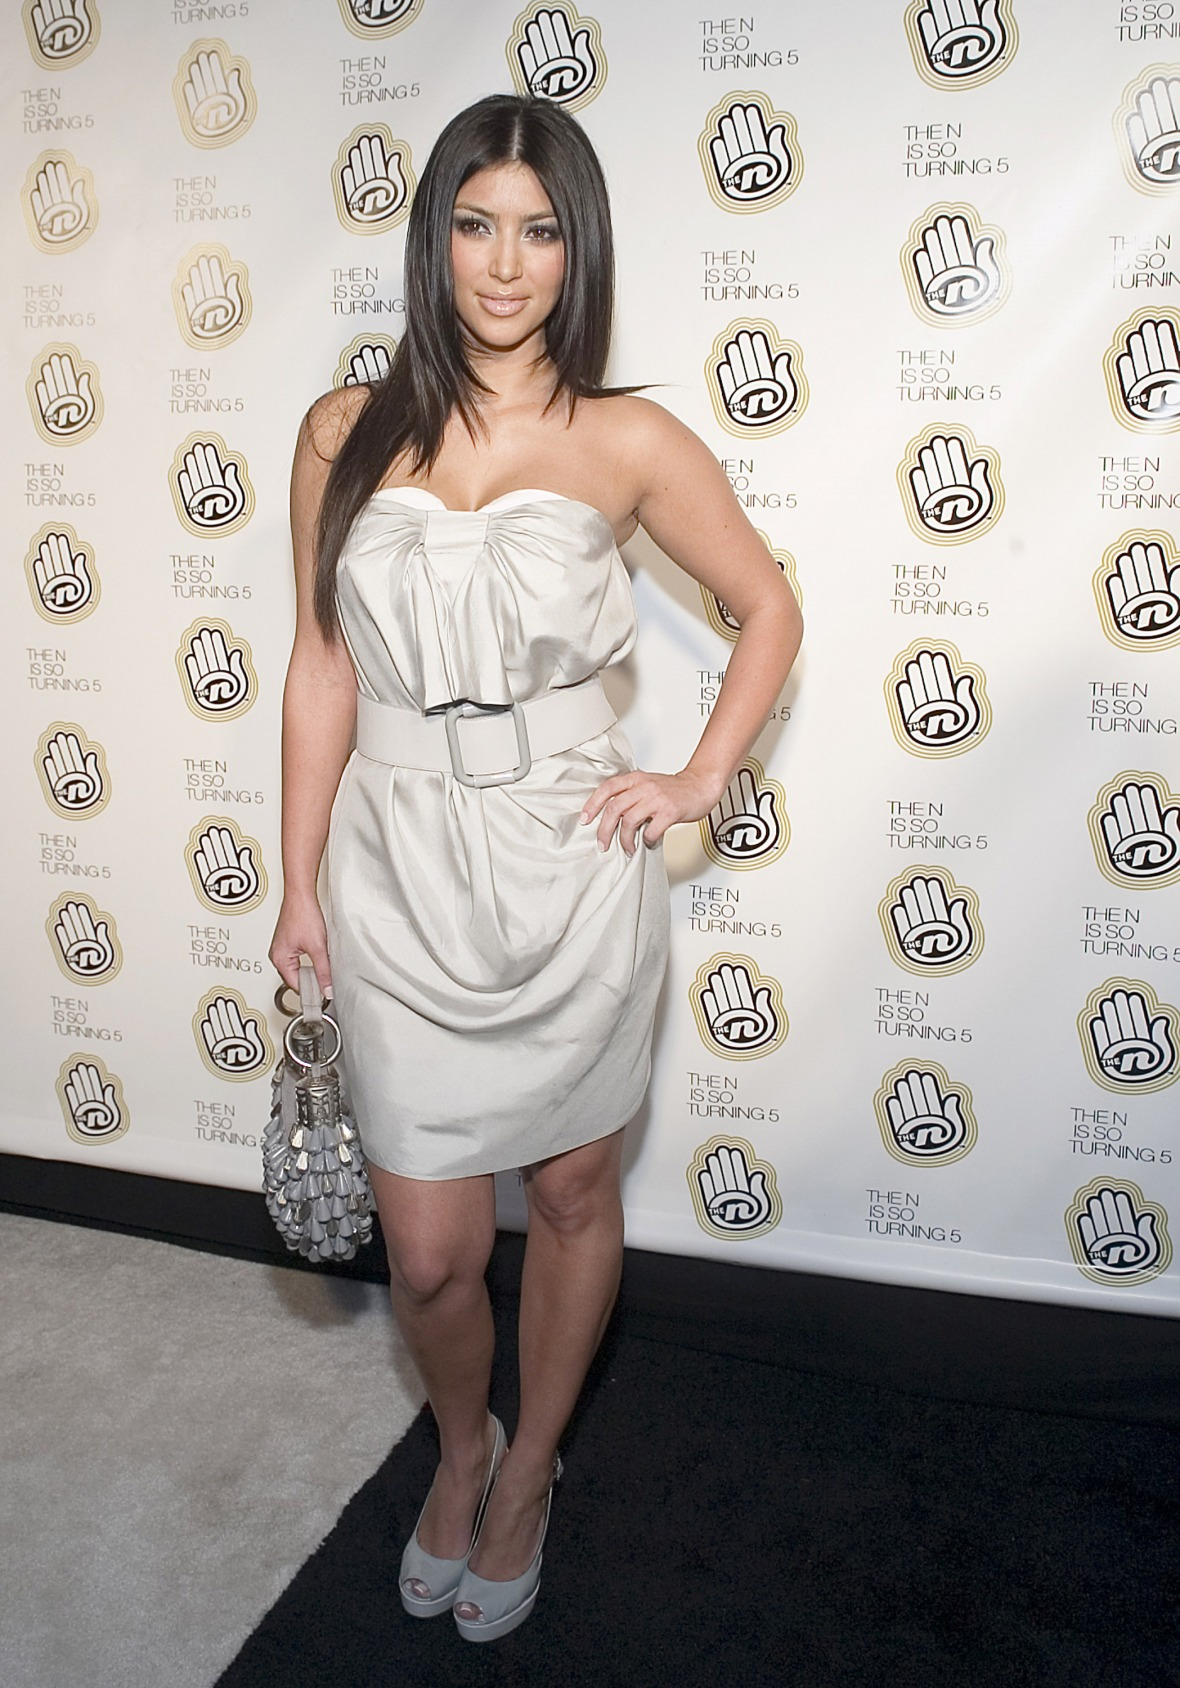 old picture of kim kardashian - getty